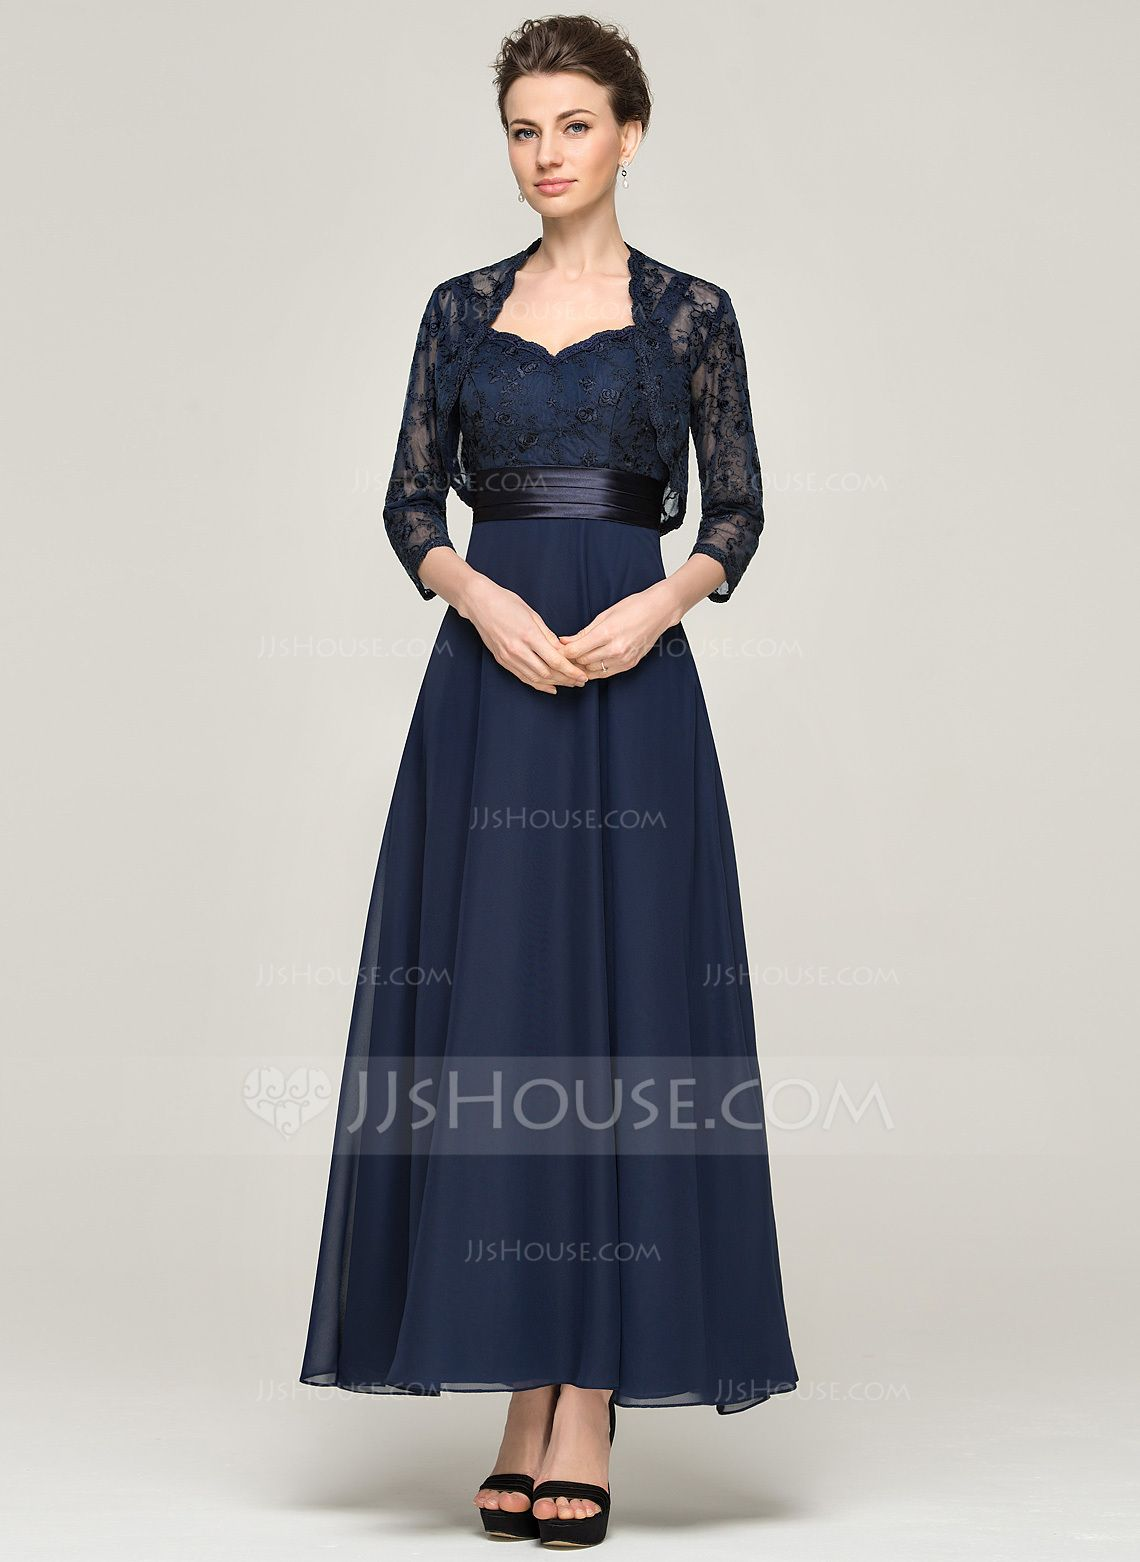 056c7f19c4d2 A-Line/Princess Sweetheart Ankle-Length Chiffon Charmeuse Lace Mother of  the Bride Dress (008062564) - JJsHouse